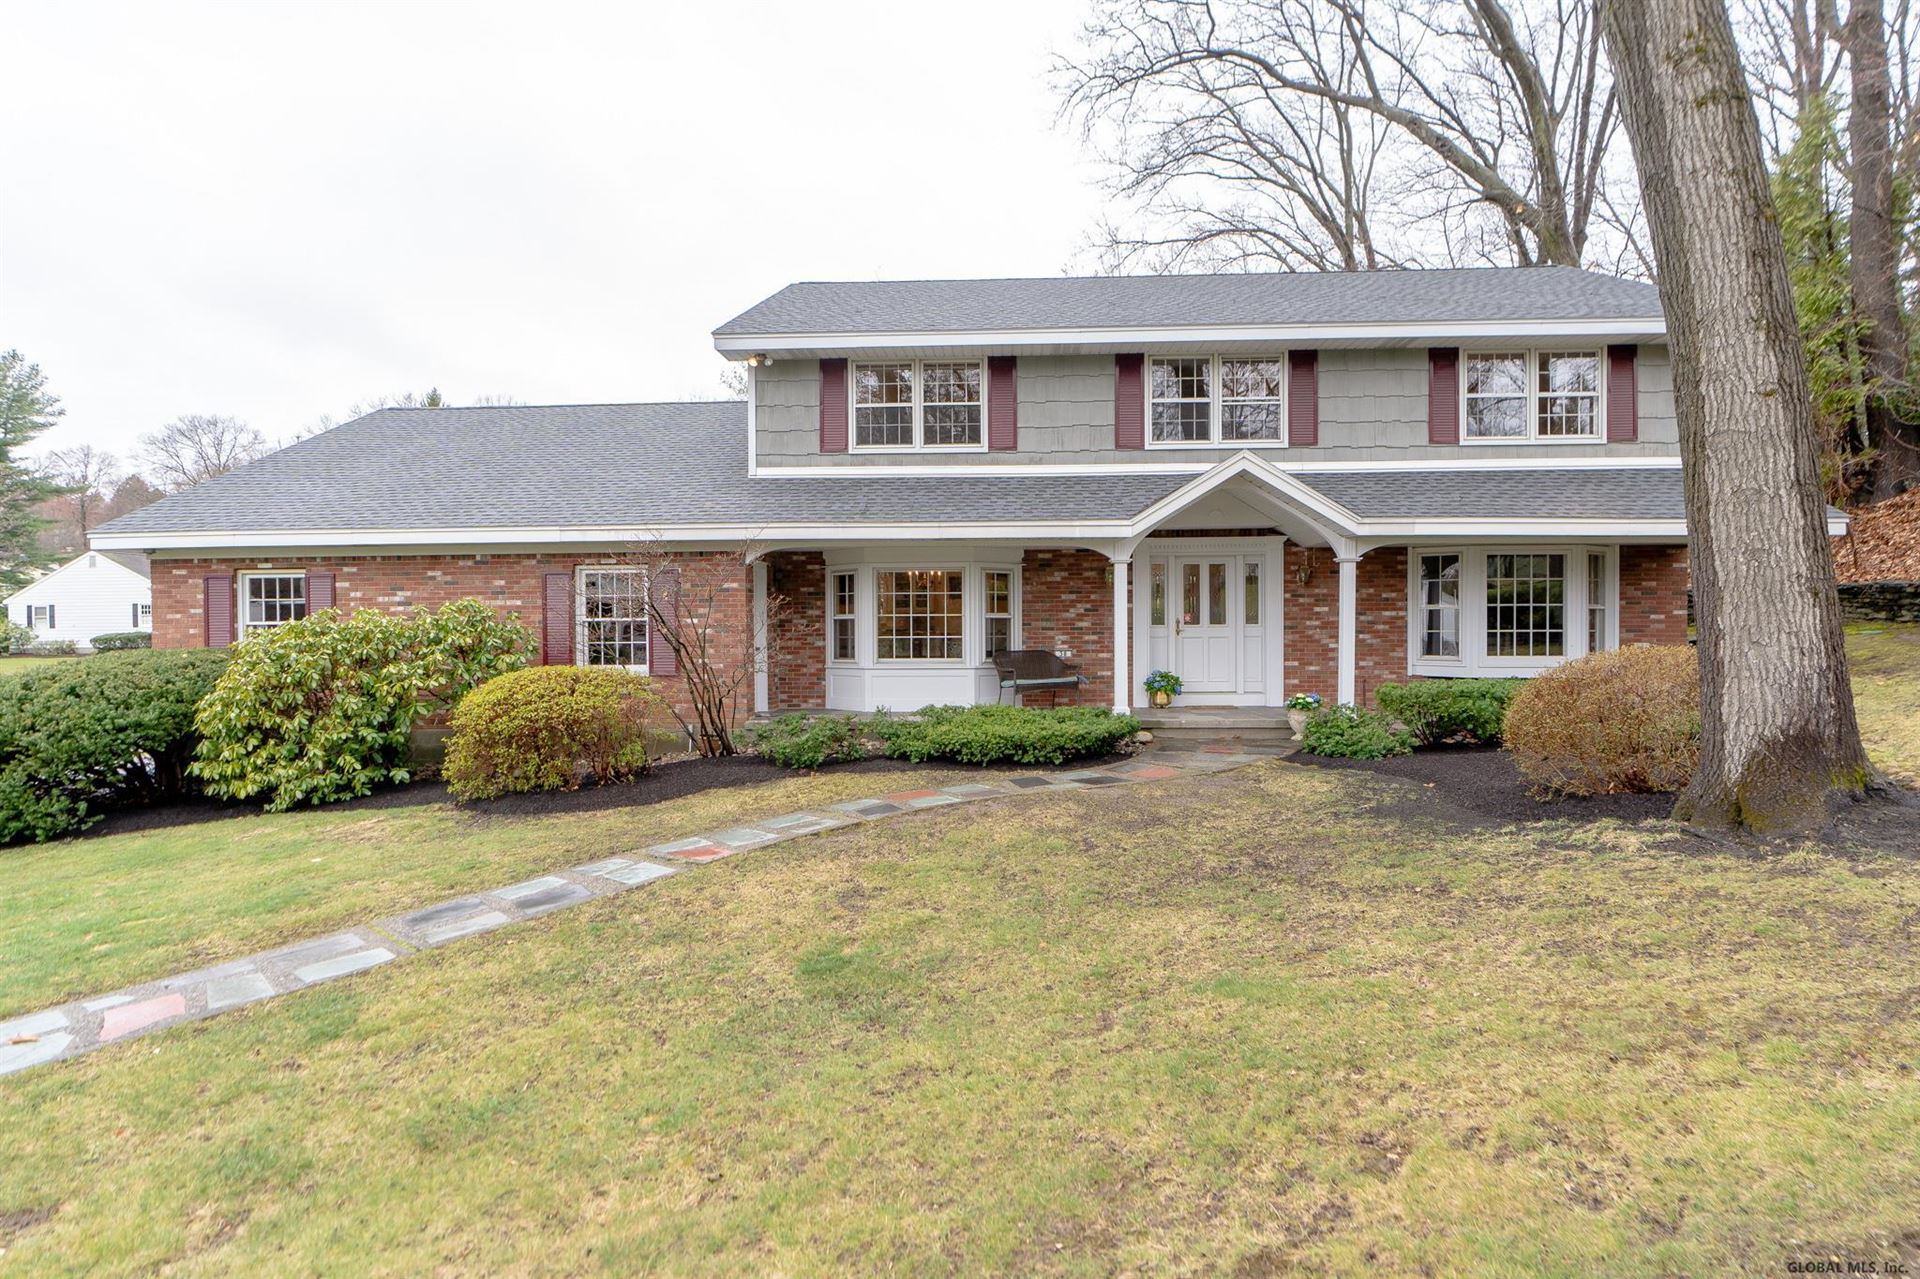 38 FOLMSBEE DR, Menands, NY 12204-1222 - #: 202115201